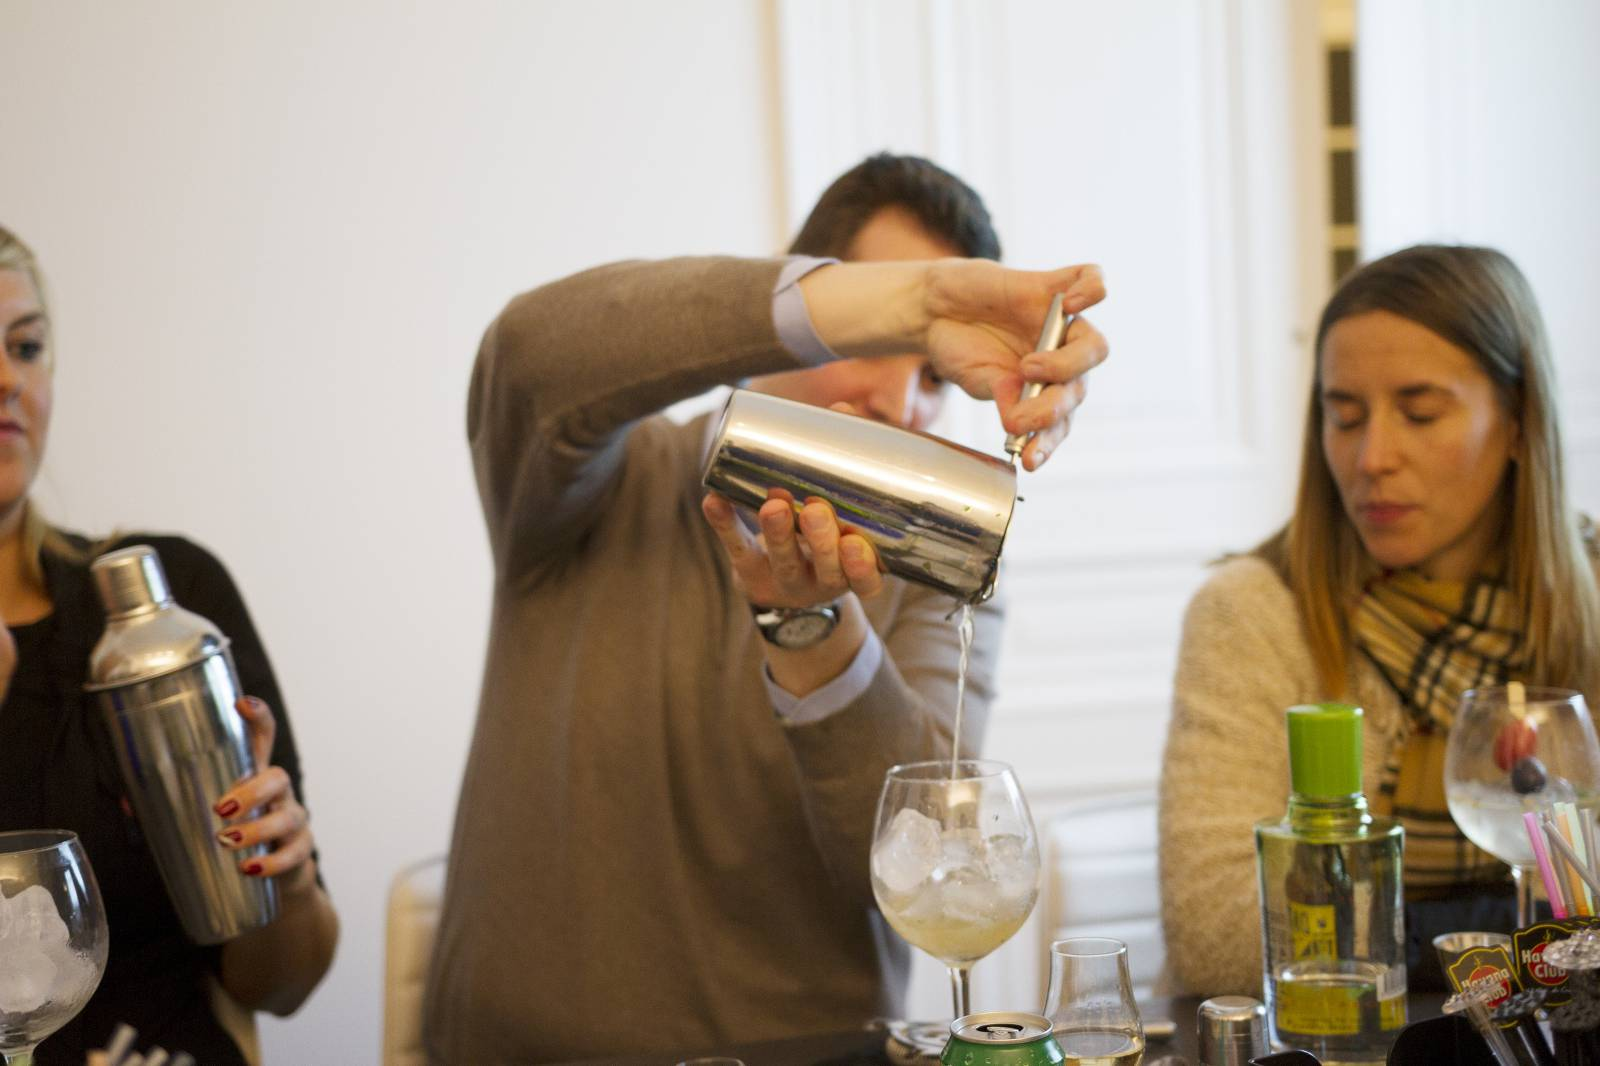 Gintasting_CommeChezSoif_30.jpg